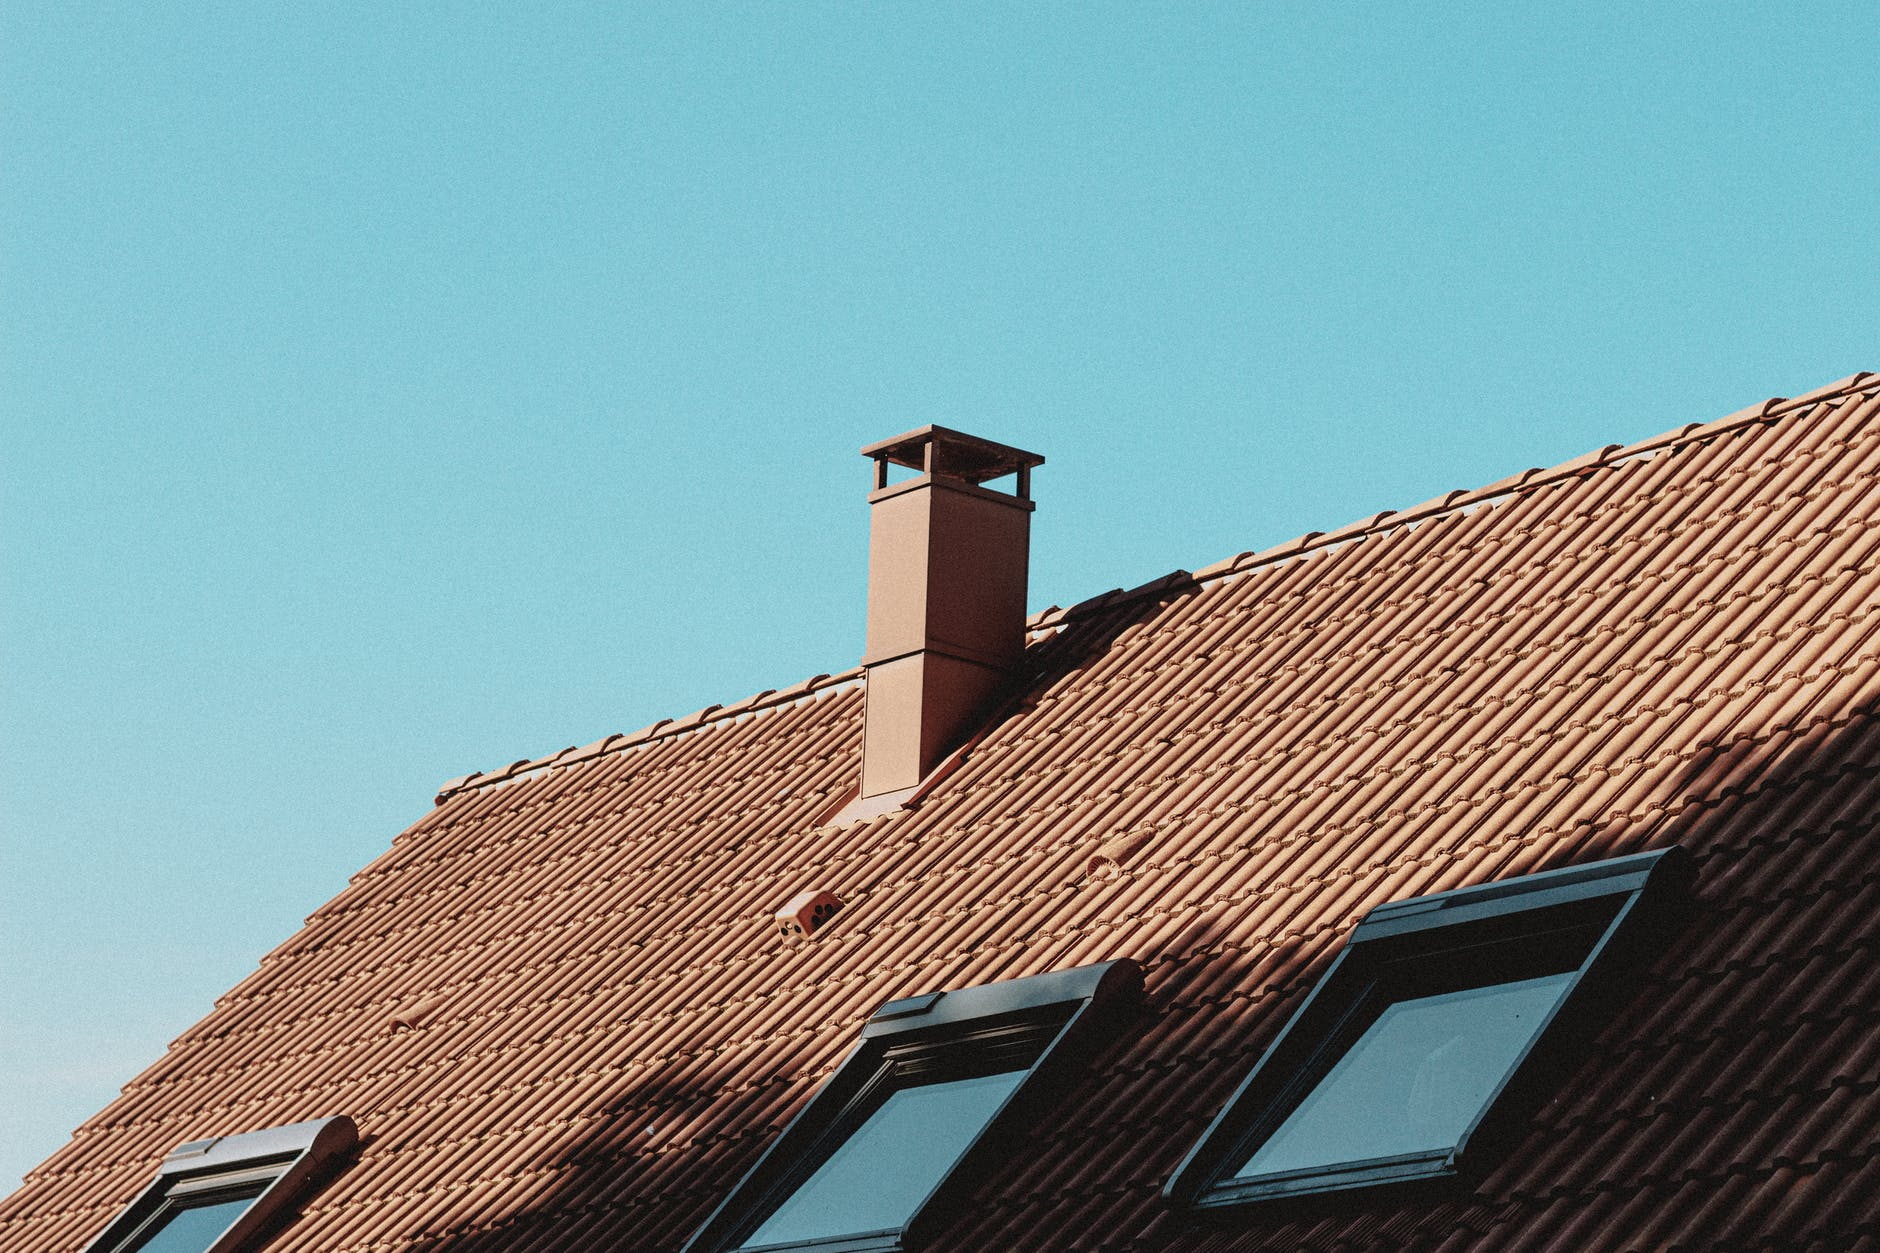 detail of house roof with chimney and attic windows